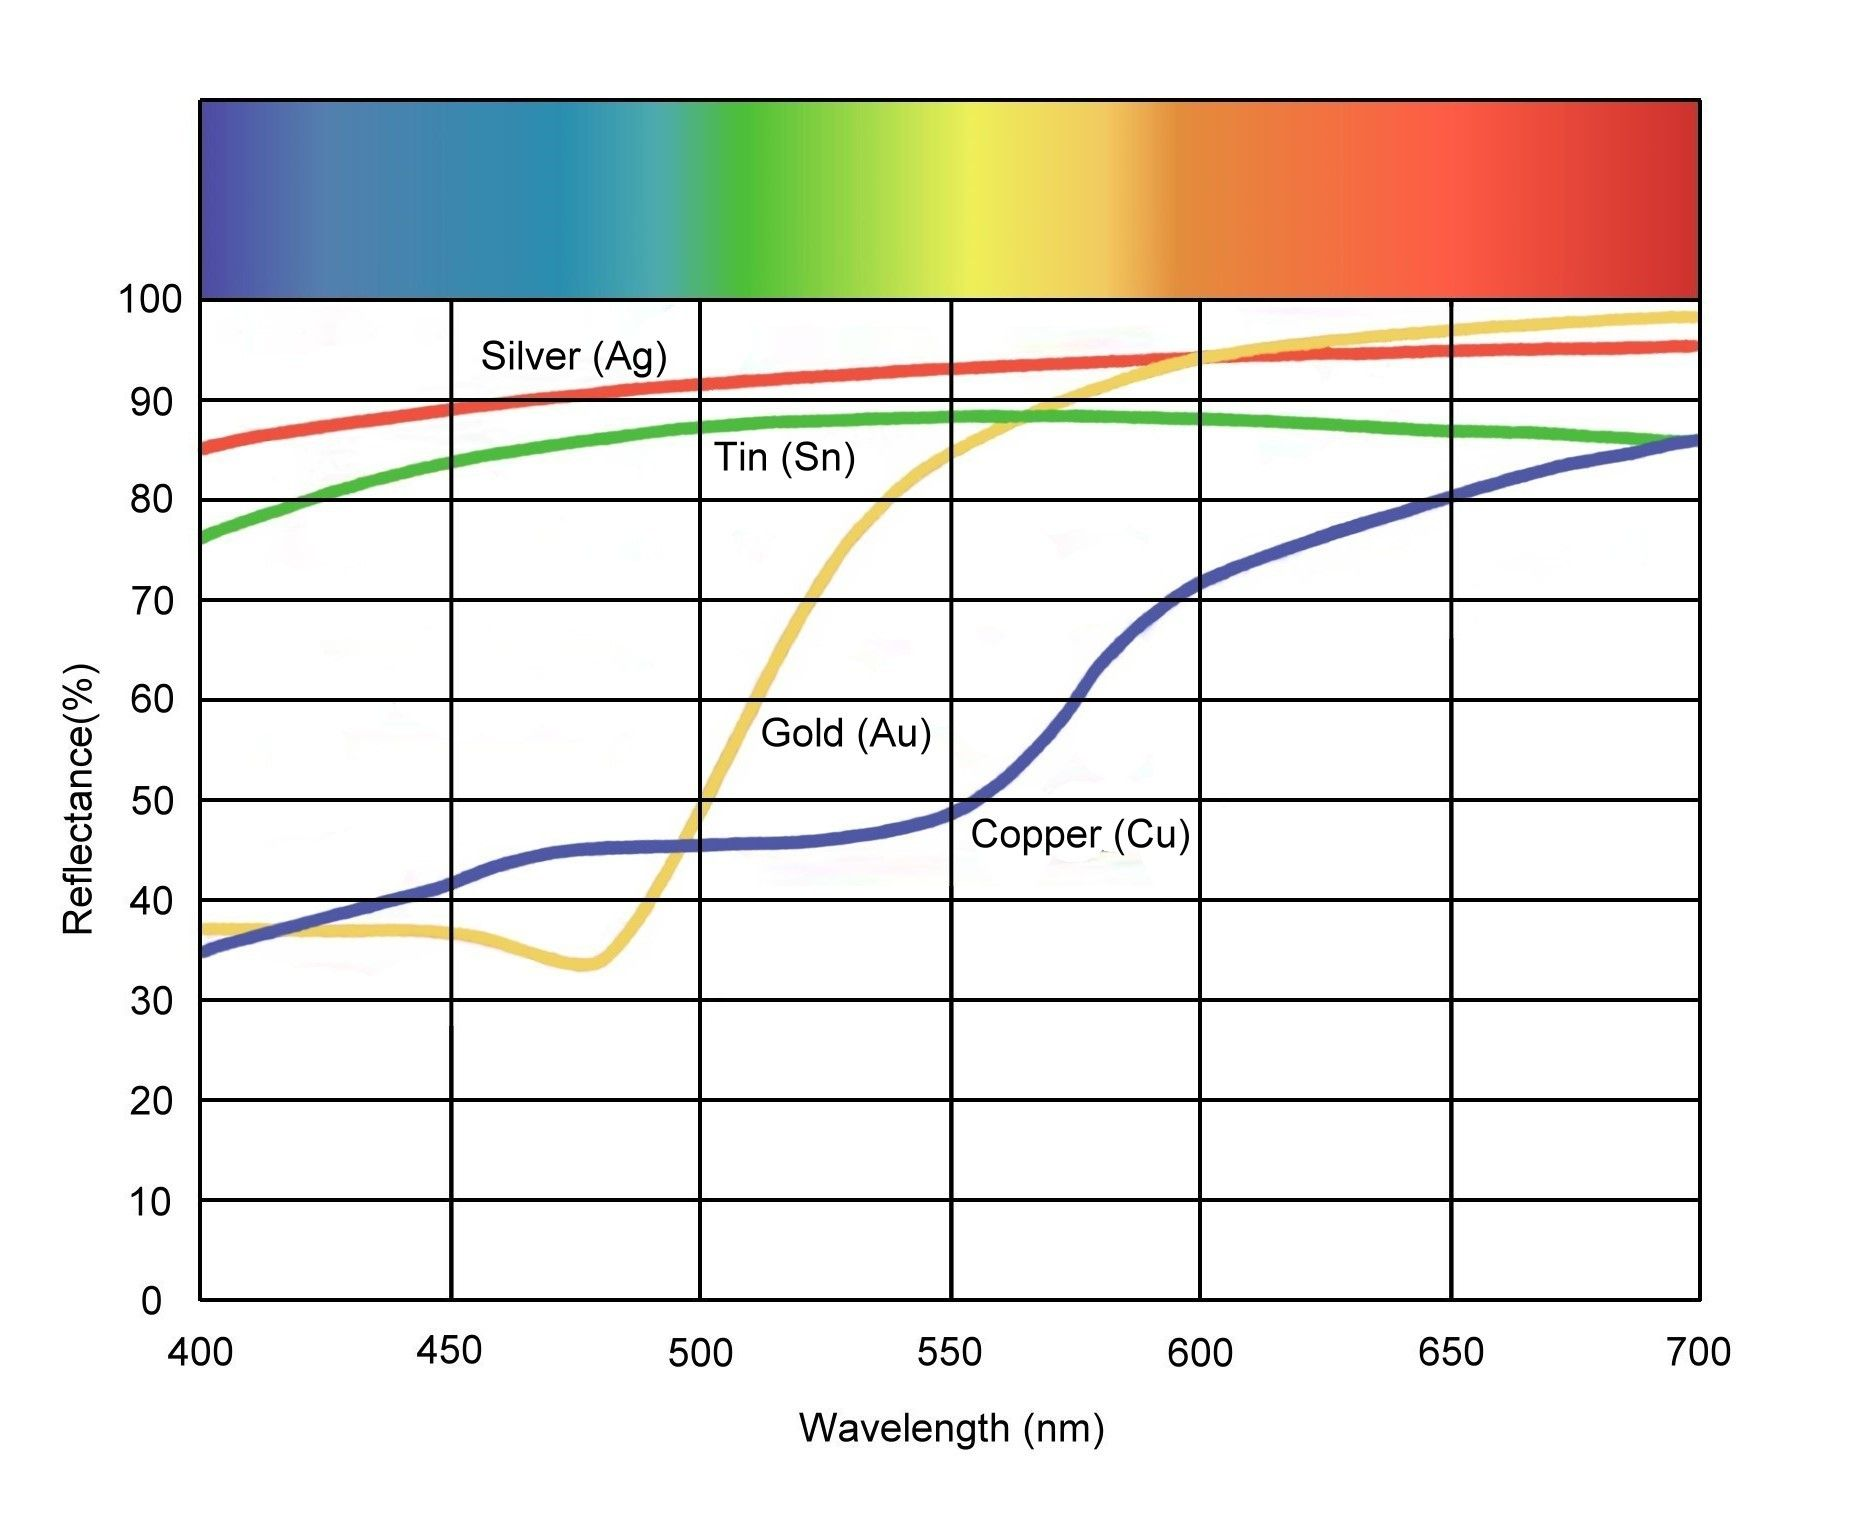 Reflectivity Of Bronze Age Metals To Visible Light Vs Wavelength